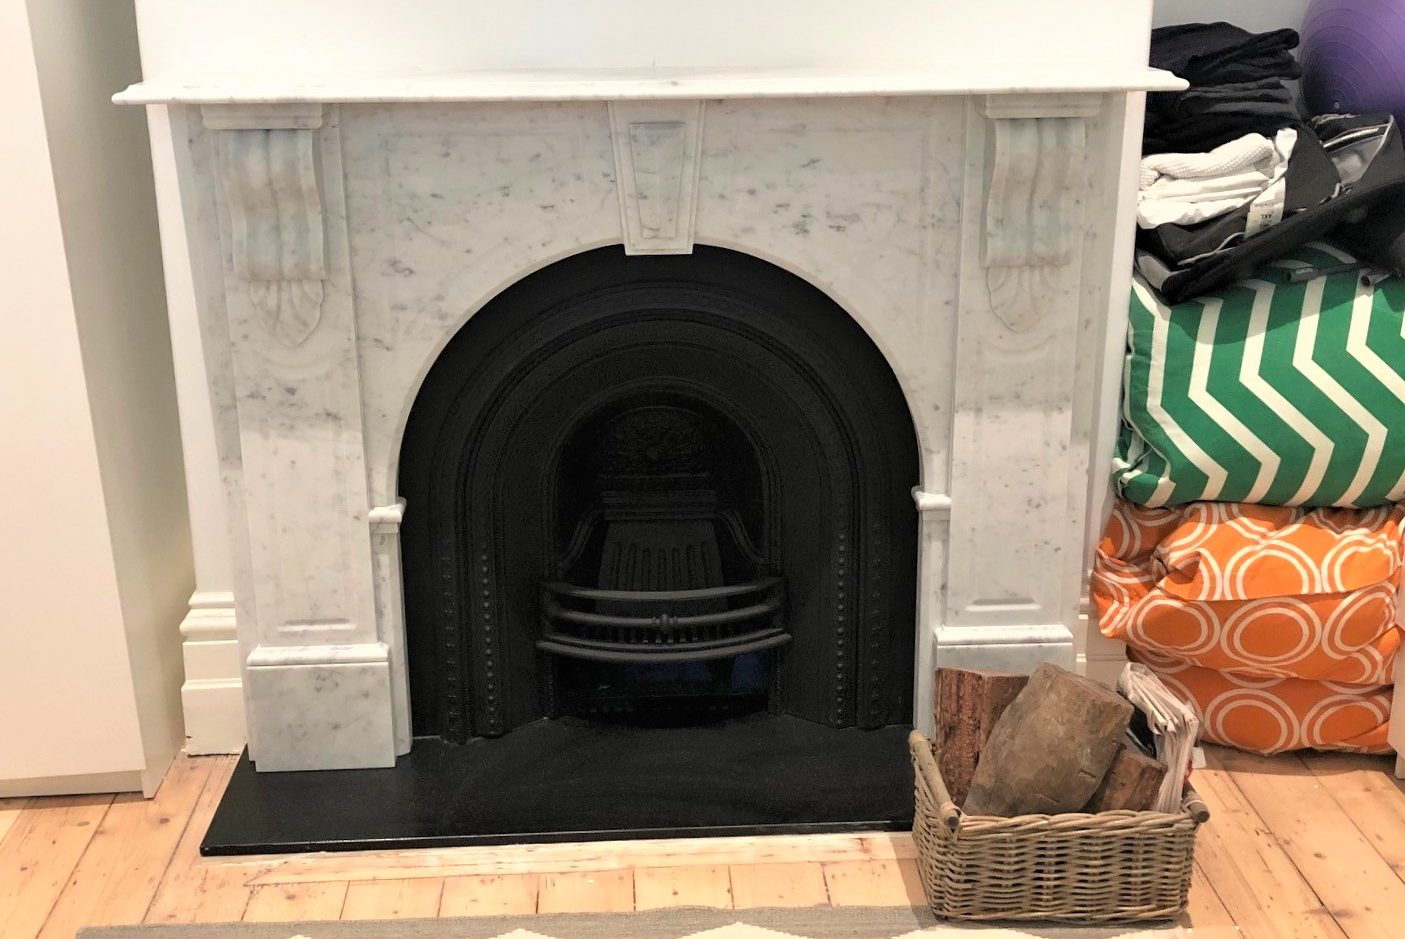 Victorian style arched fireplace made of Italian white Carrara